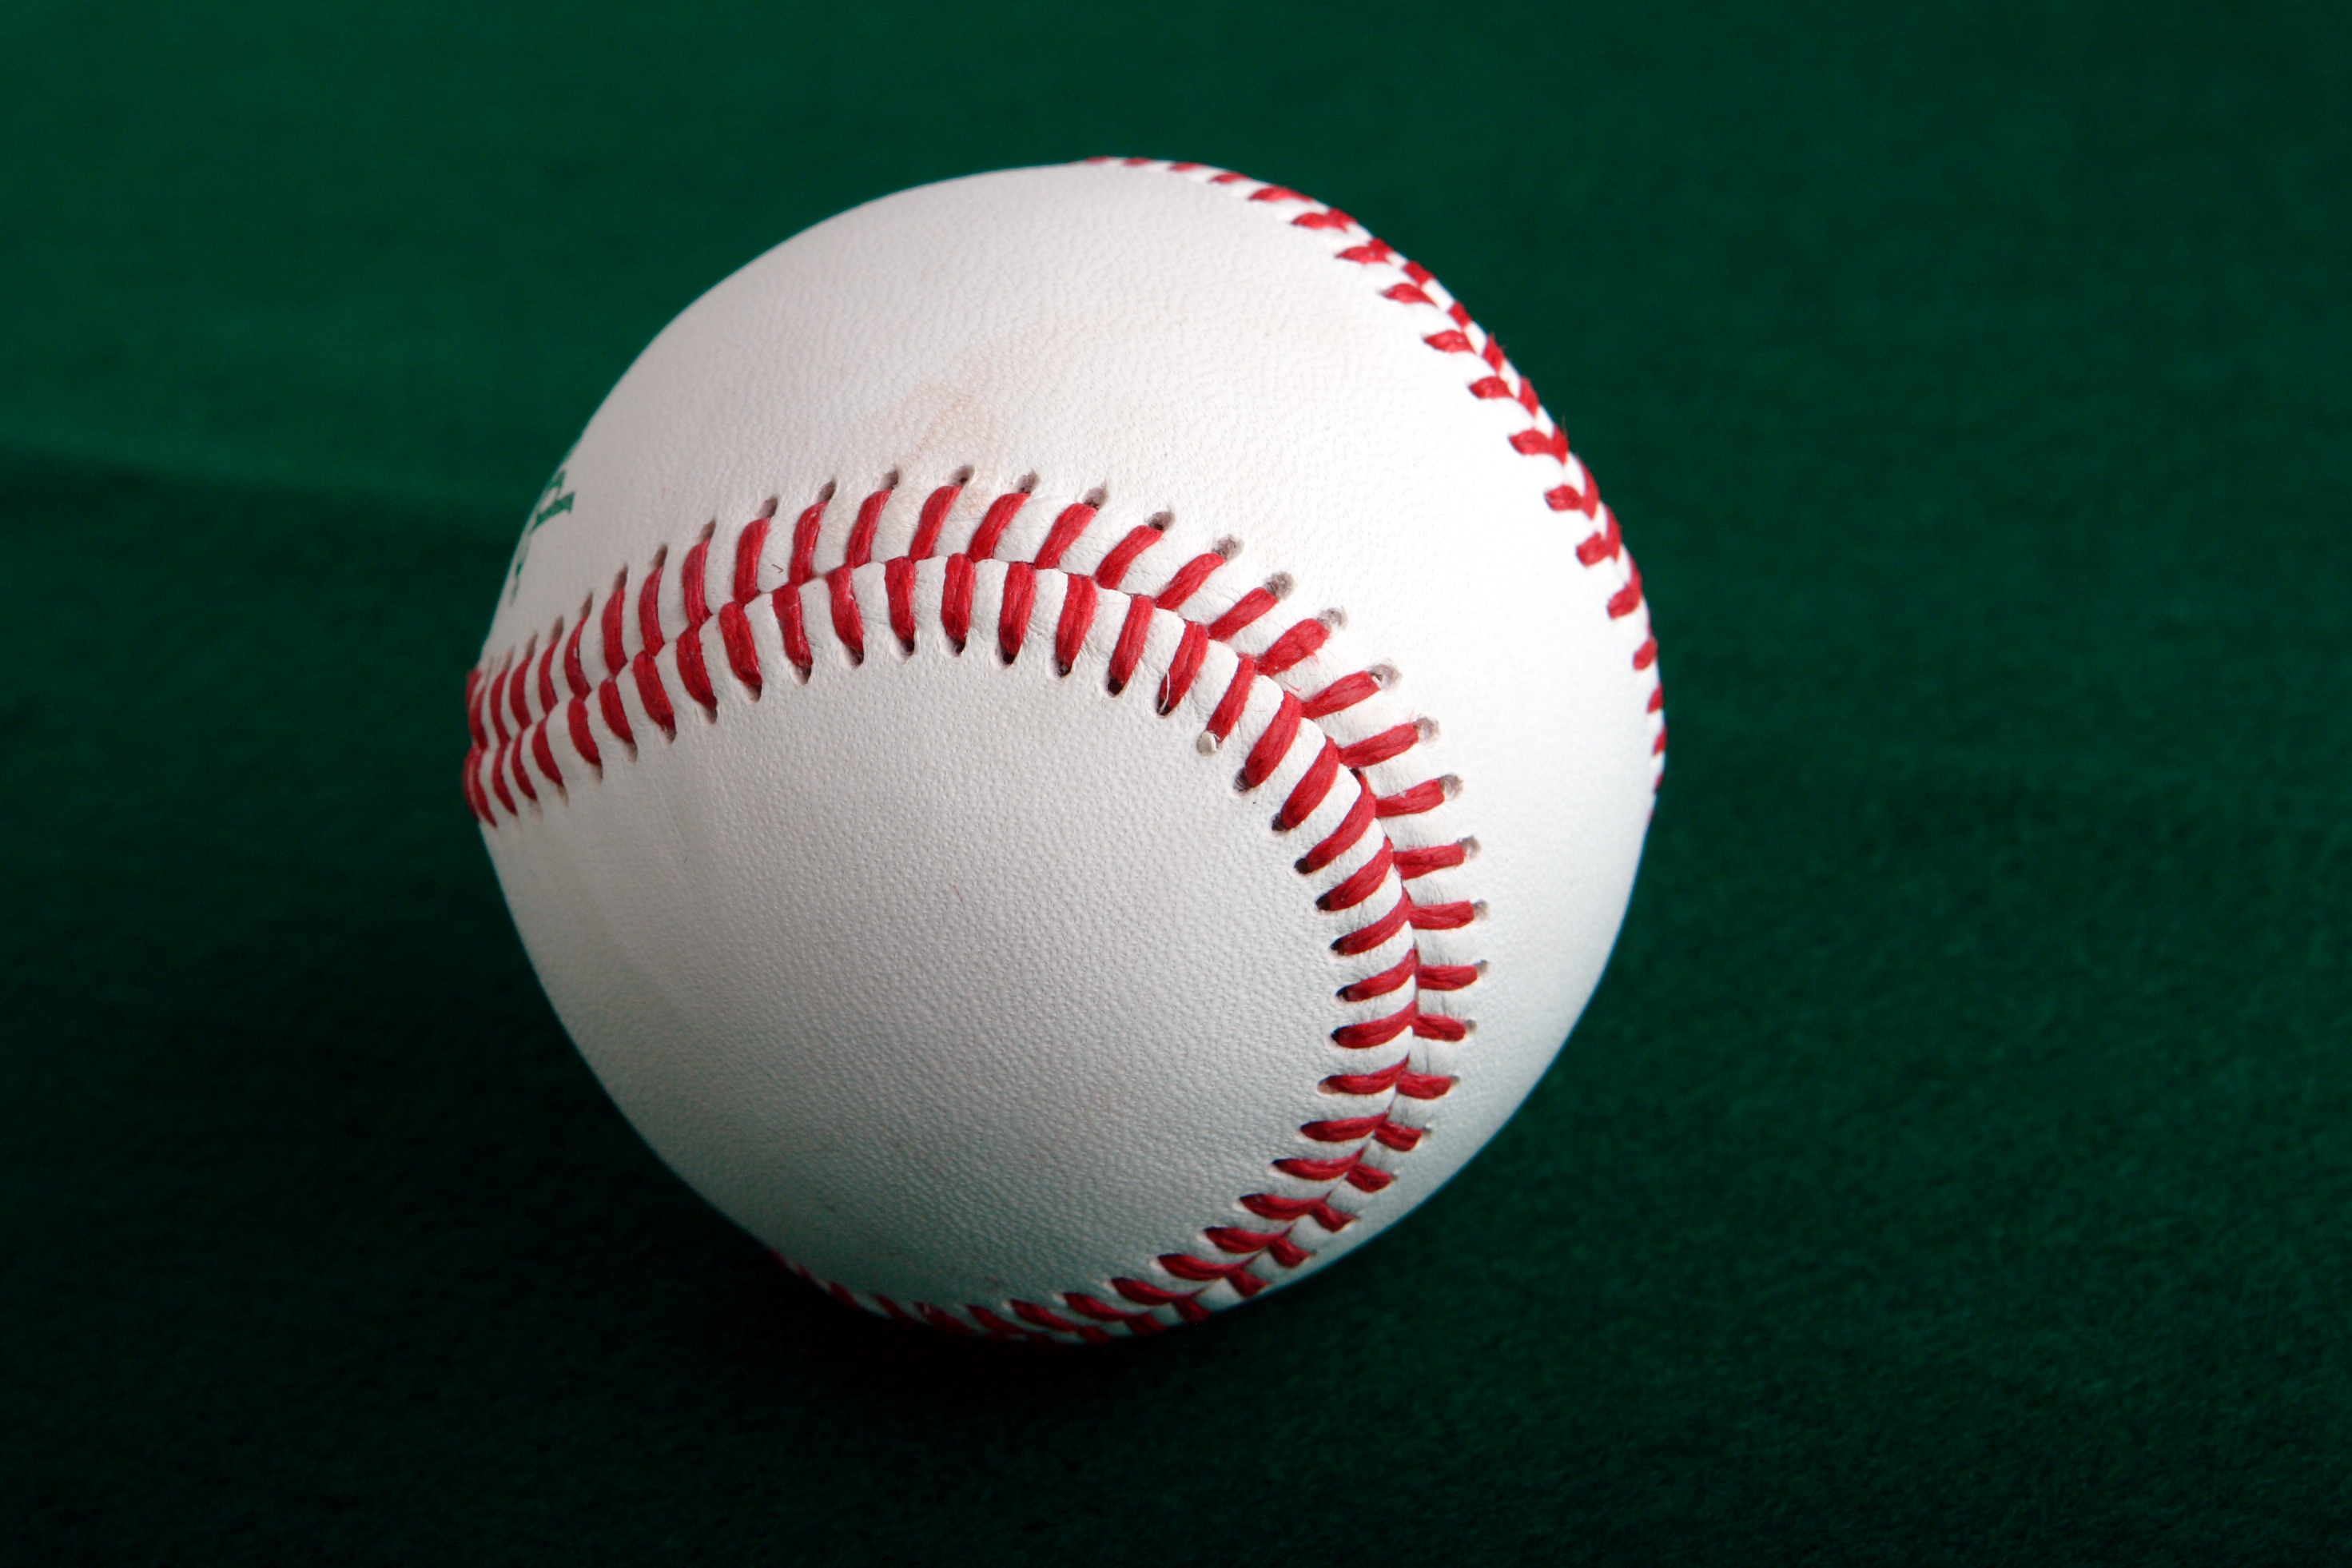 Make A Venn Diagram: Comparison of baseball and softball - Wikipedia,Chart